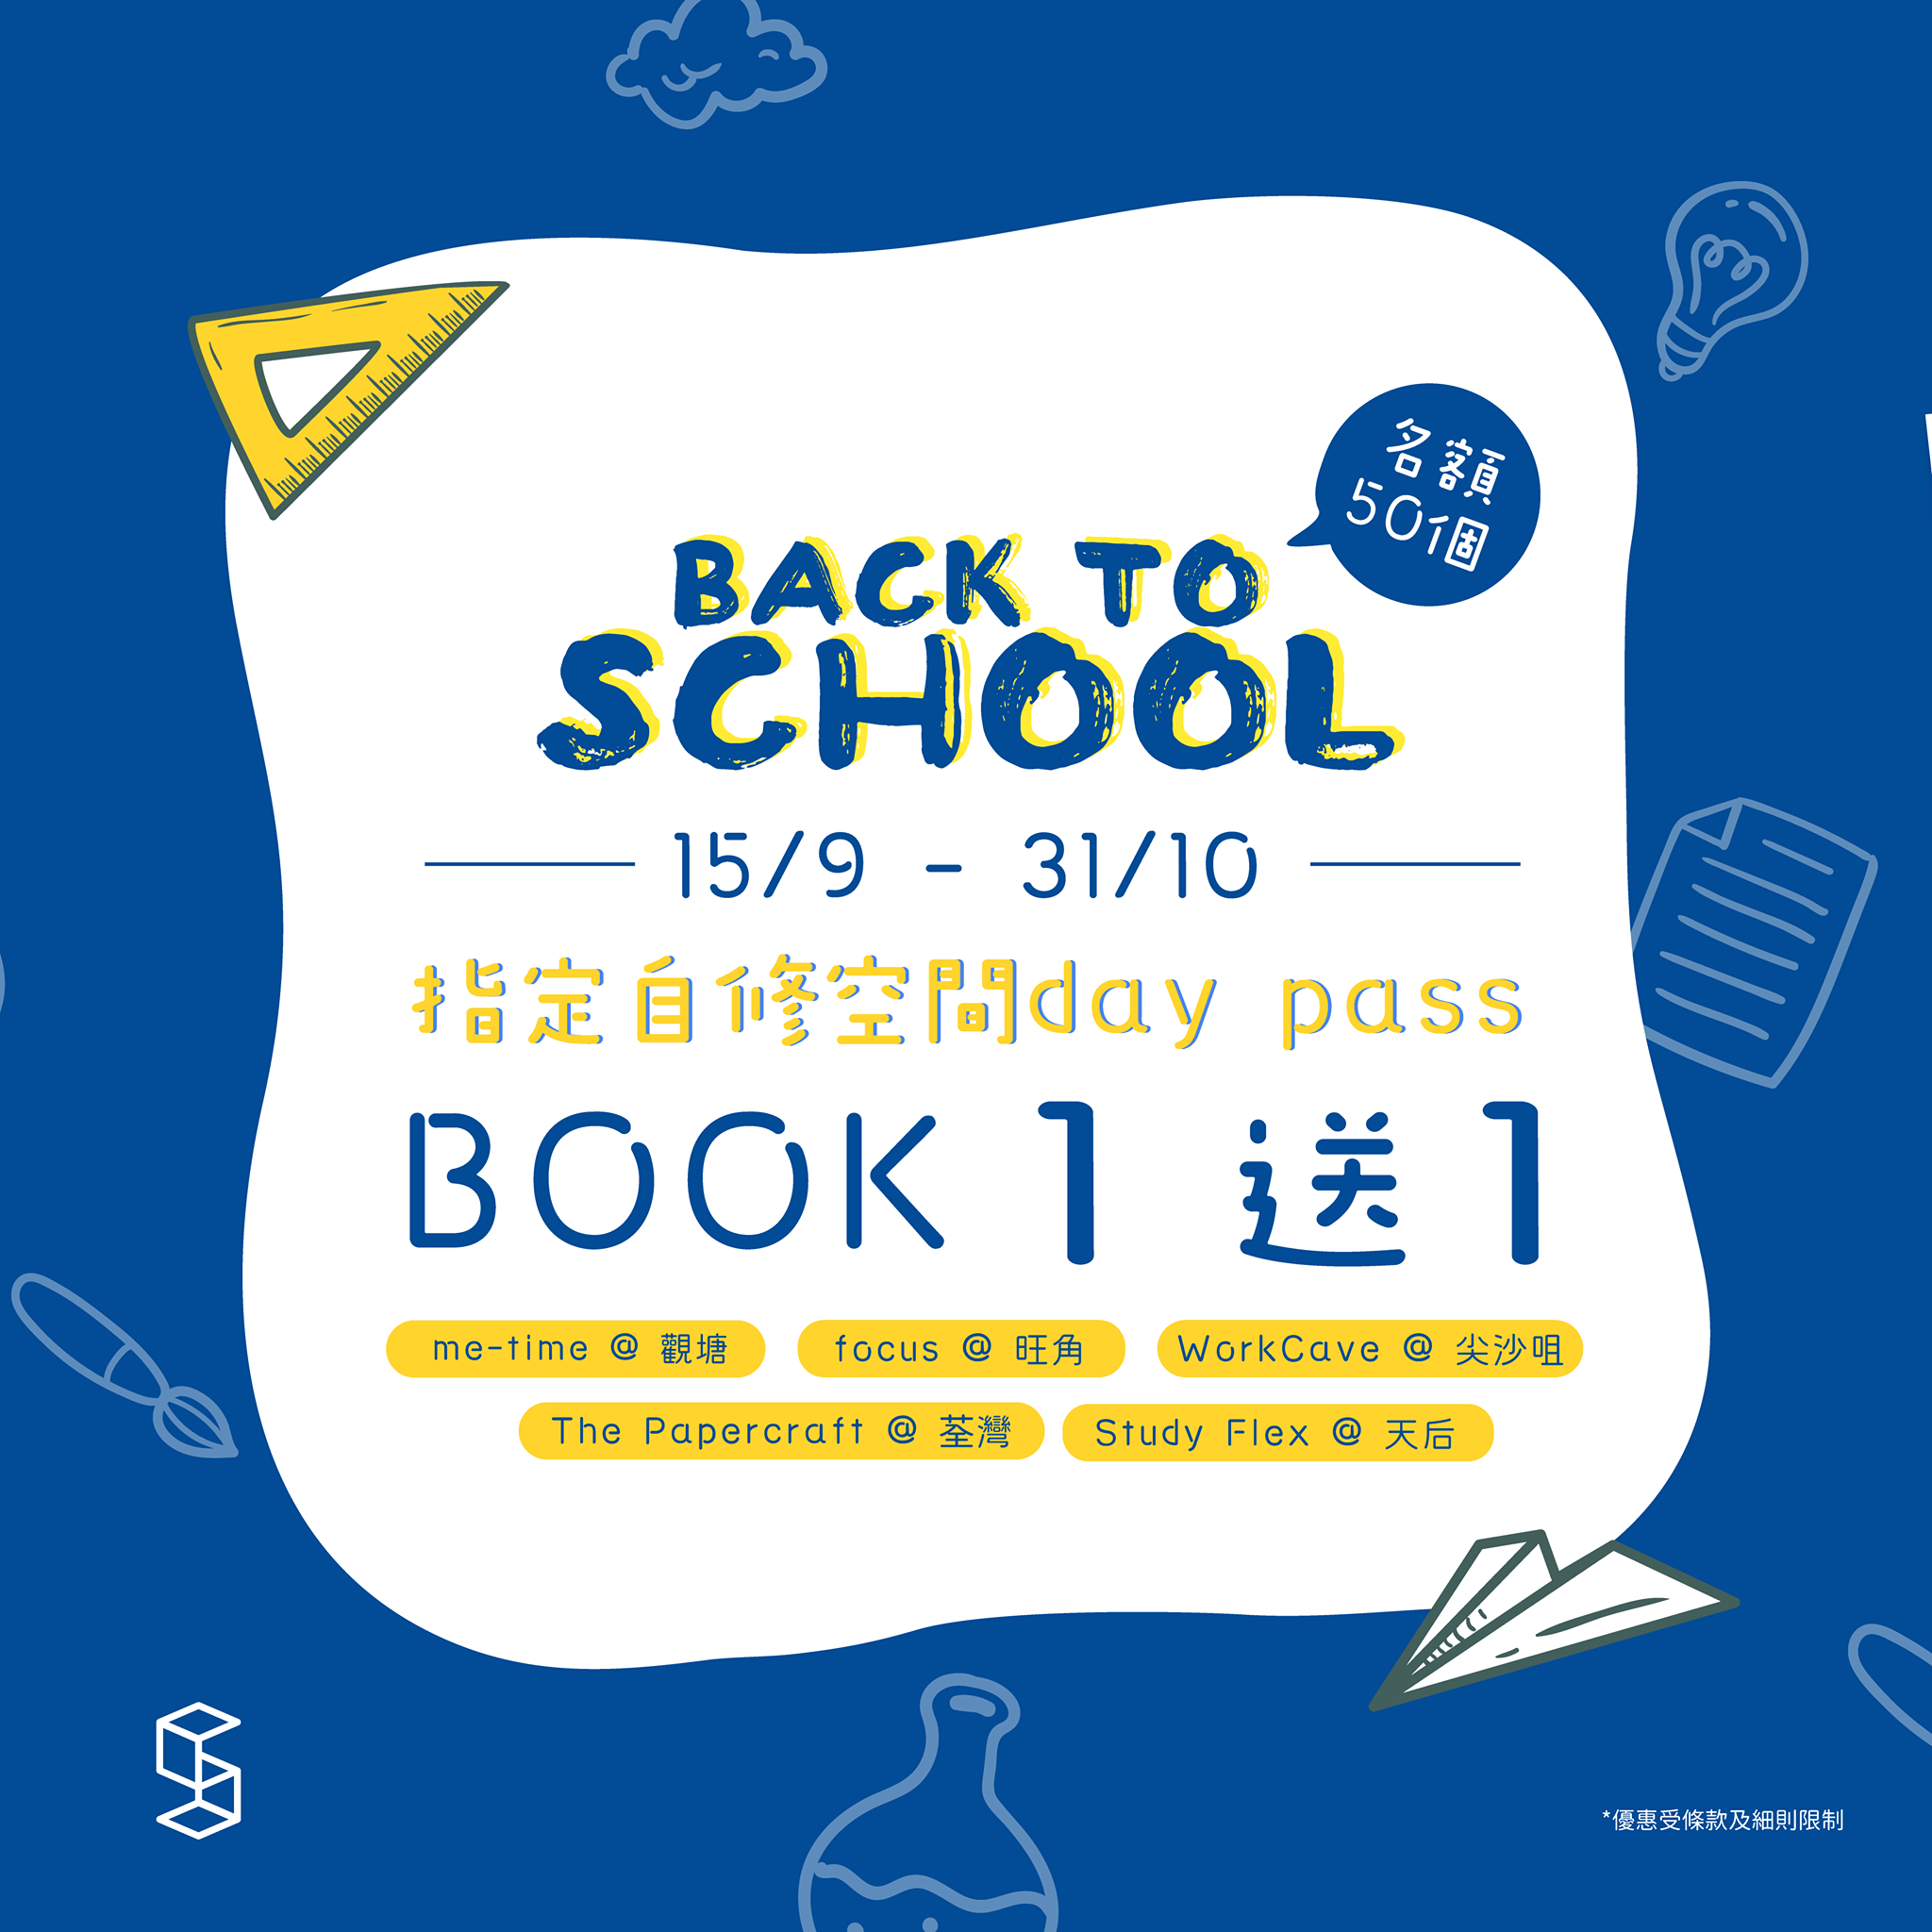 Back to School Hot Desk Buy 1 Get 1 Free Offer with Background in blue and stationeries